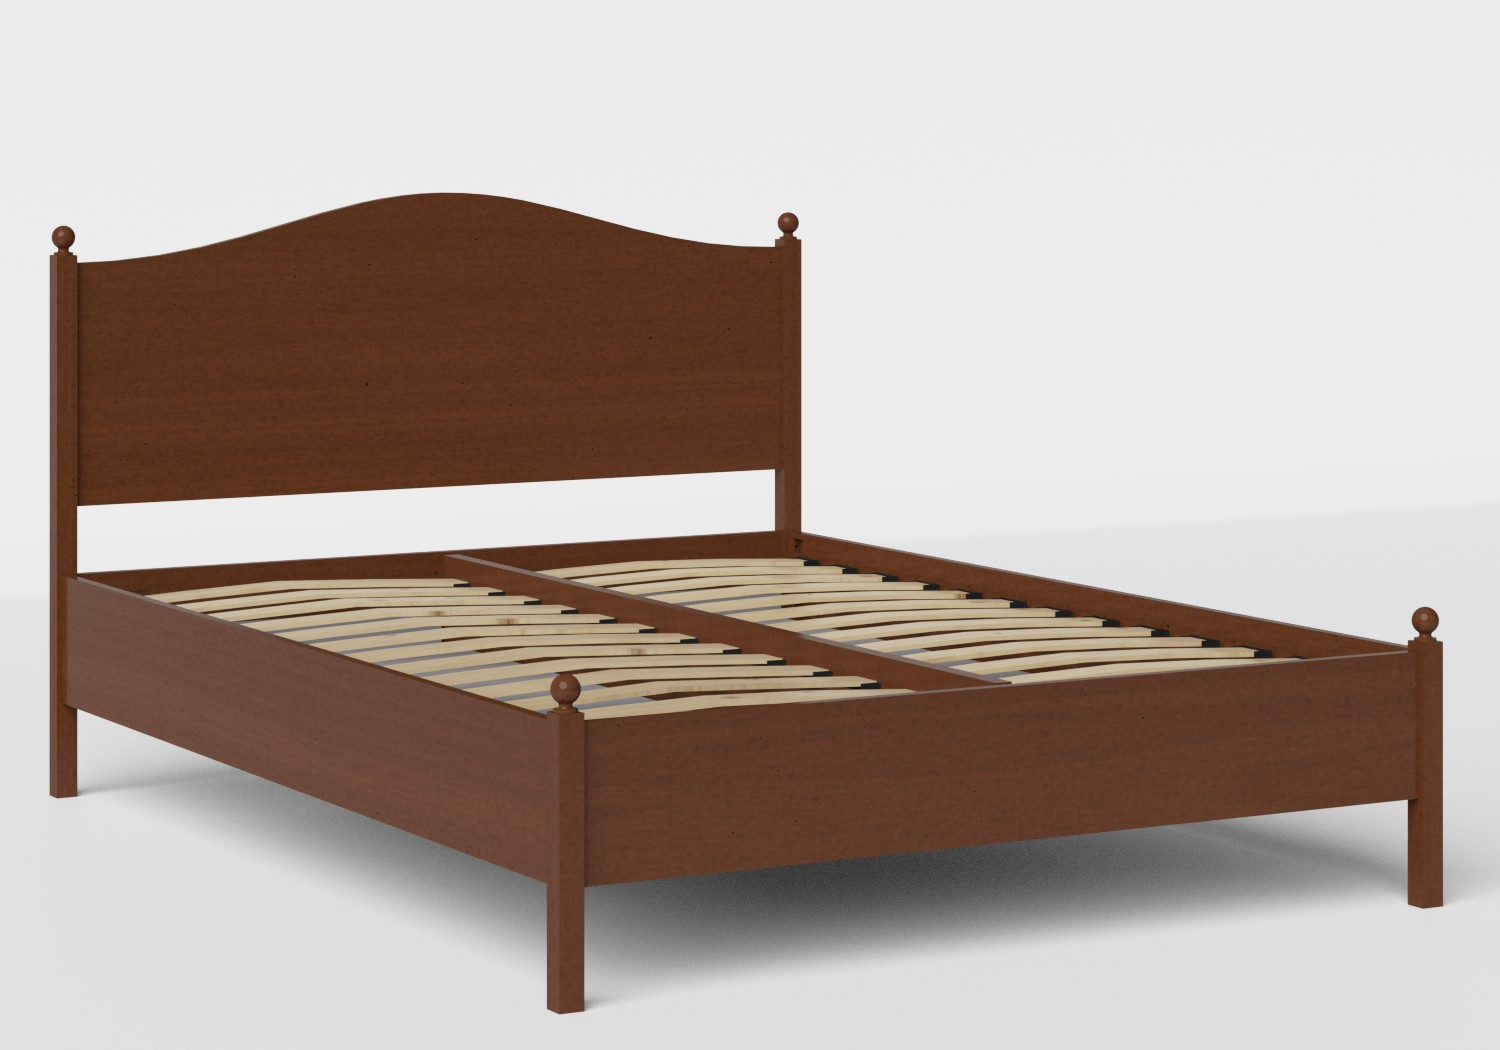 Brady Wood Bed in Dark Cherry shown with slatted frame